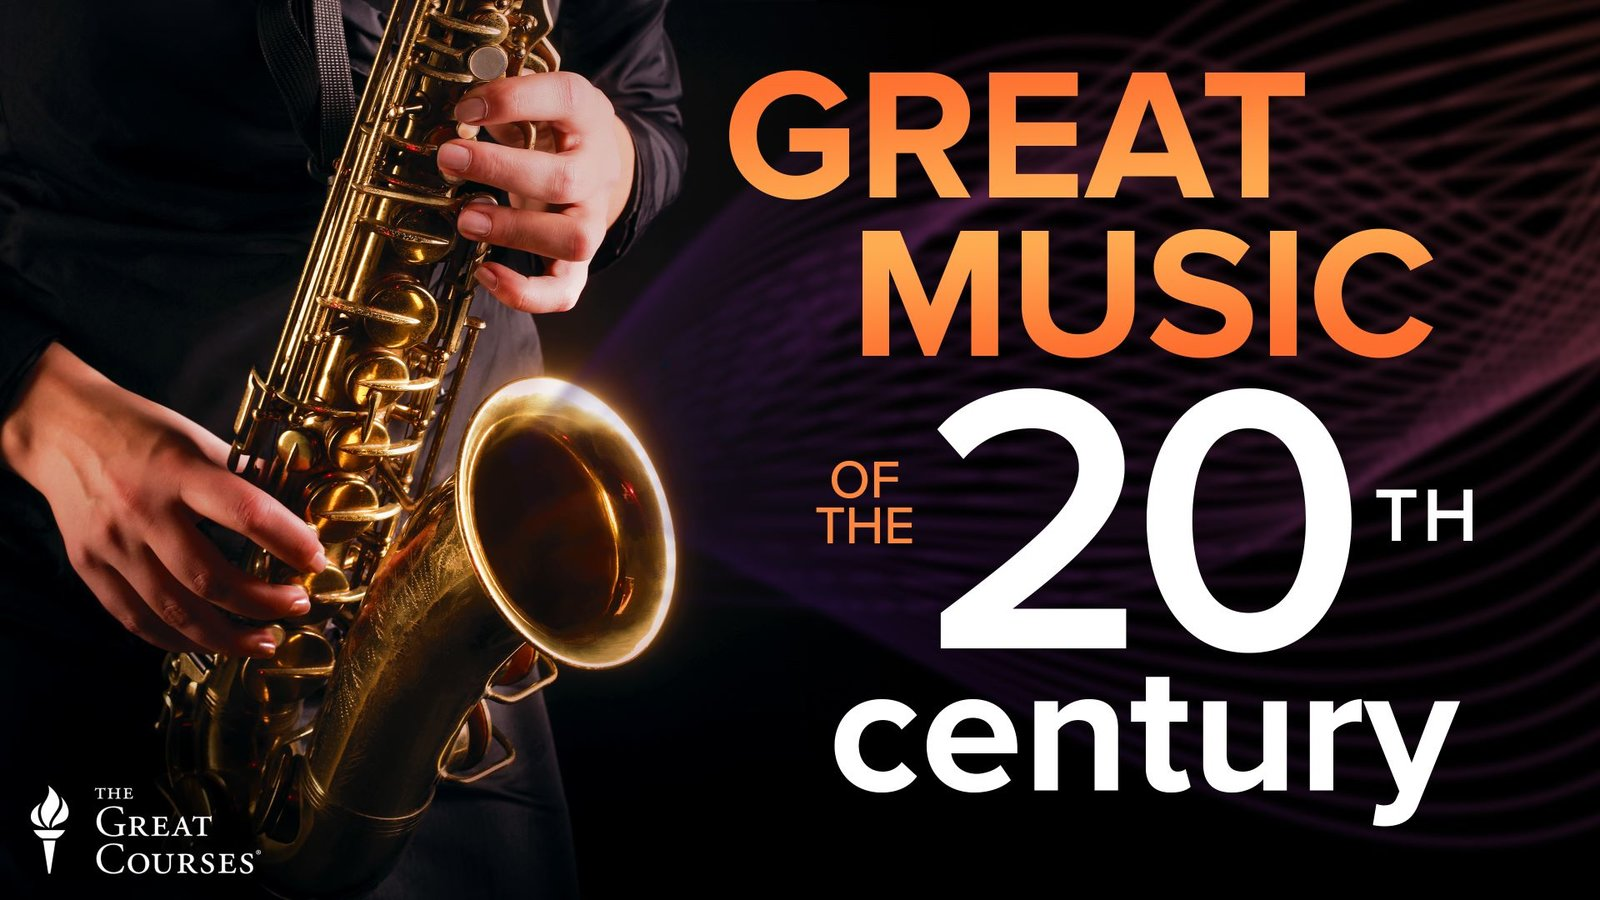 Great Music of the 20th Century